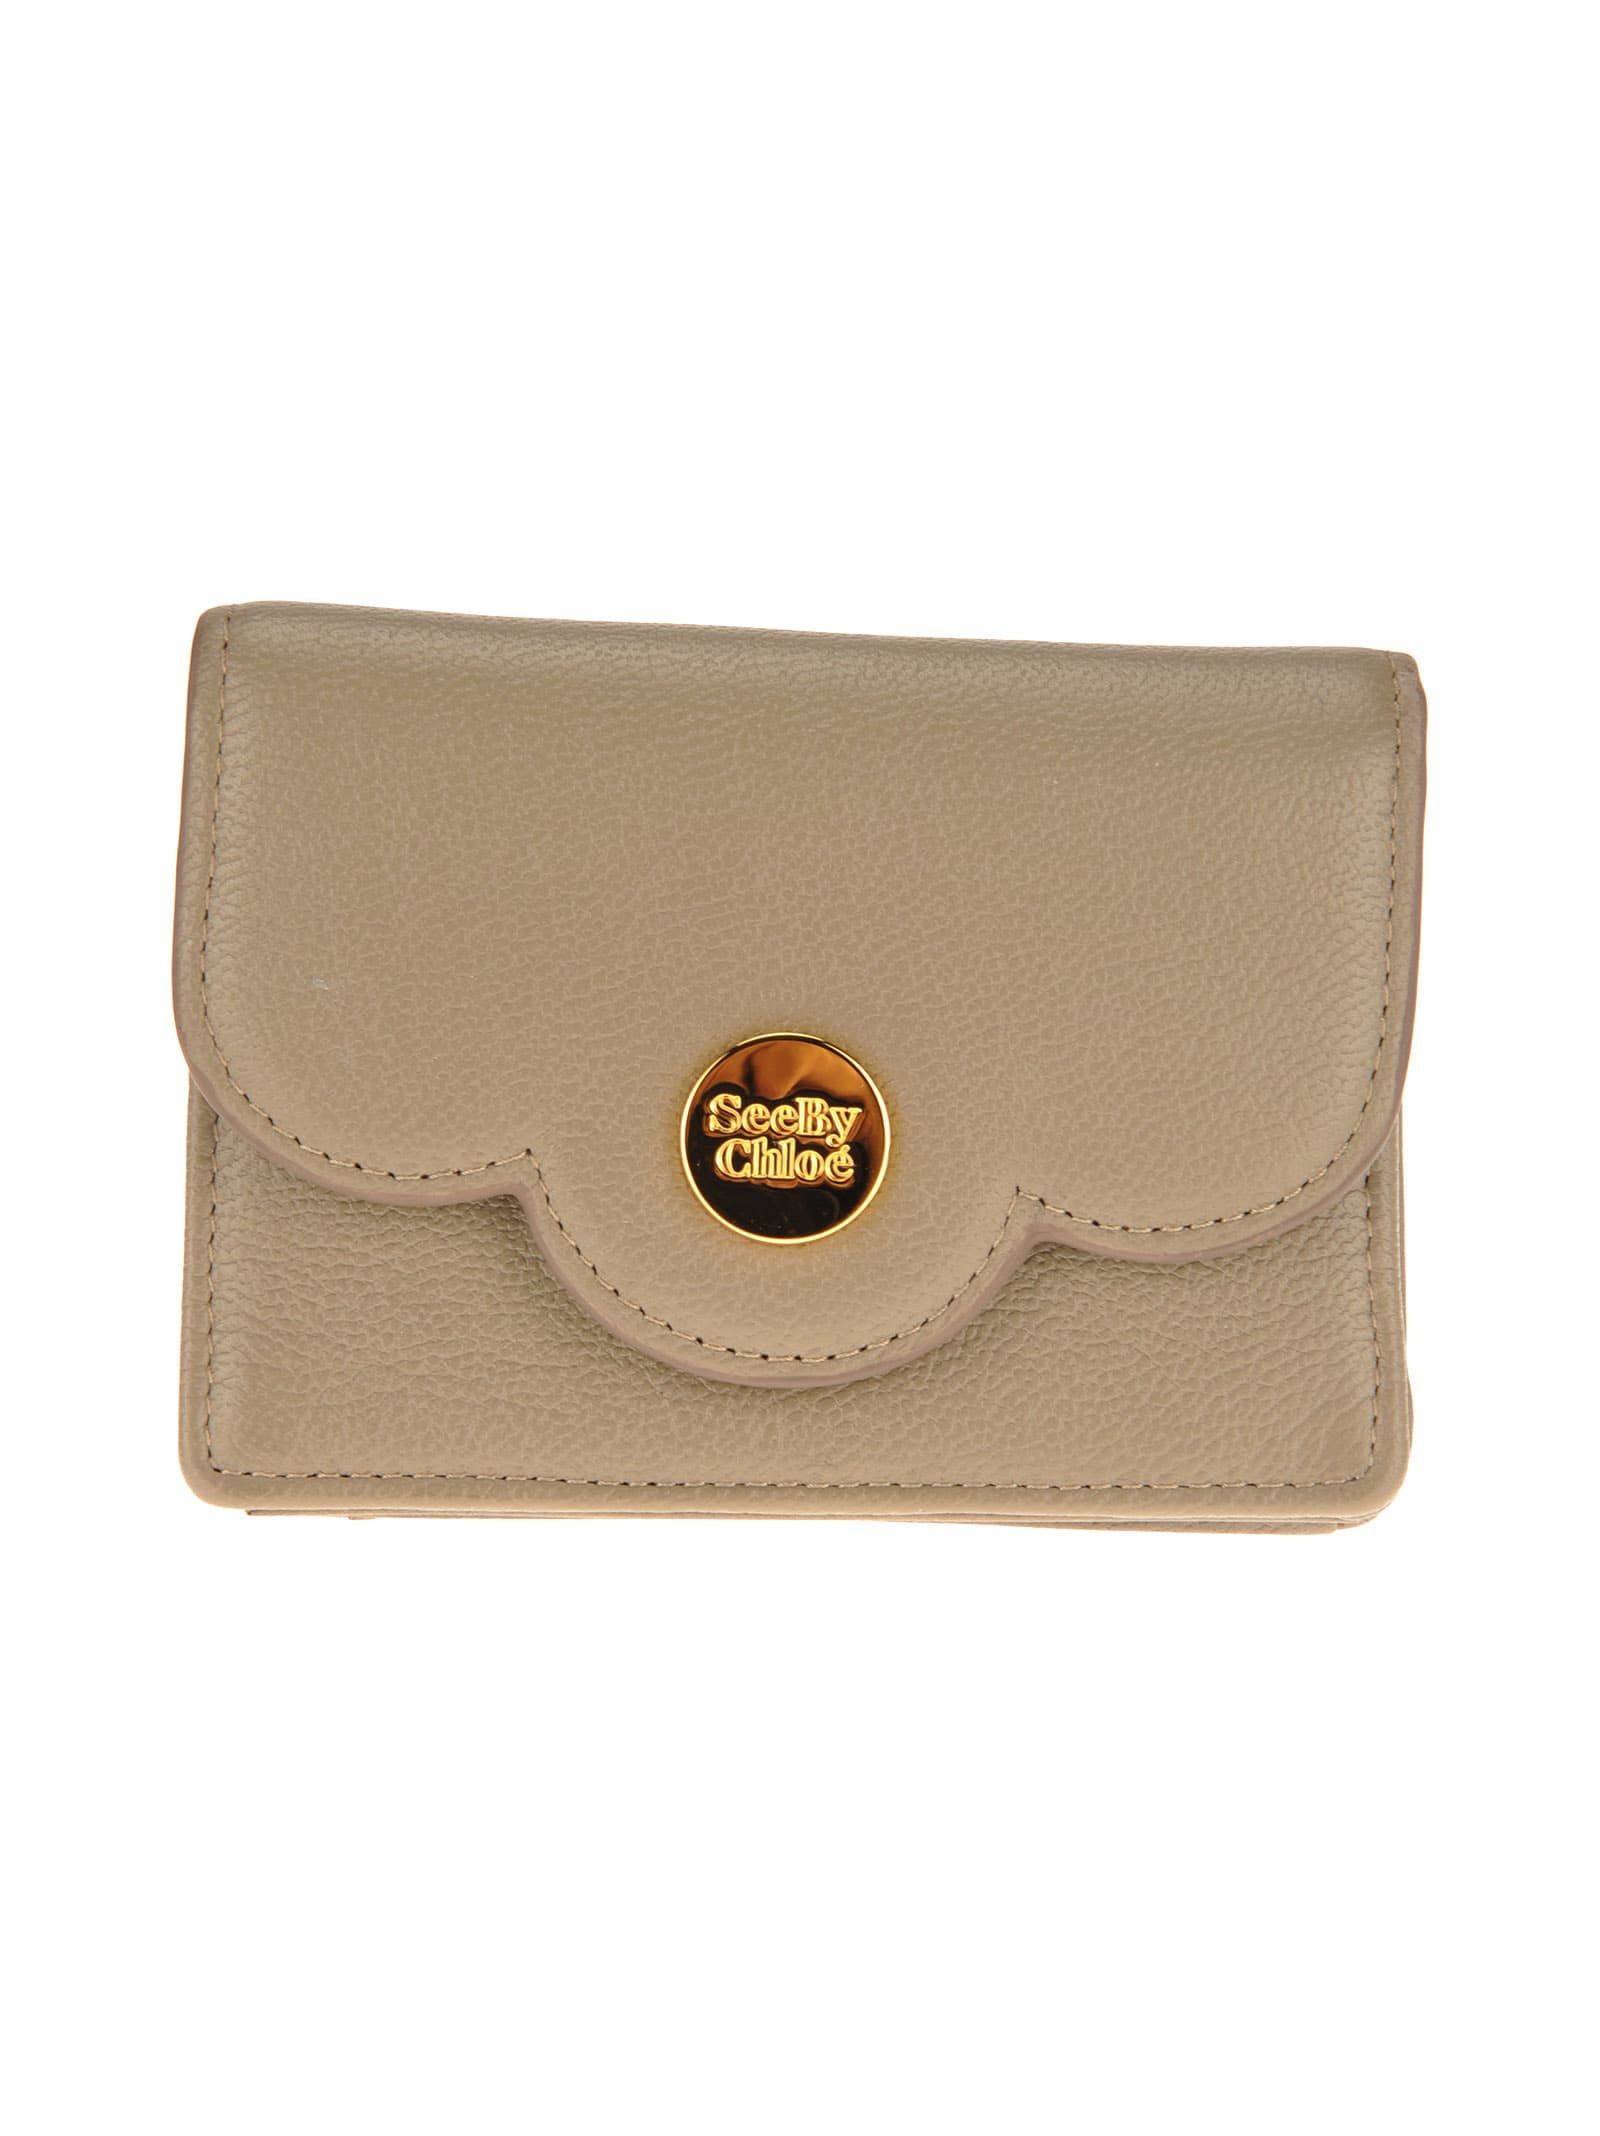 71c490fc02 See By Chloe' Polina Multiple Purse